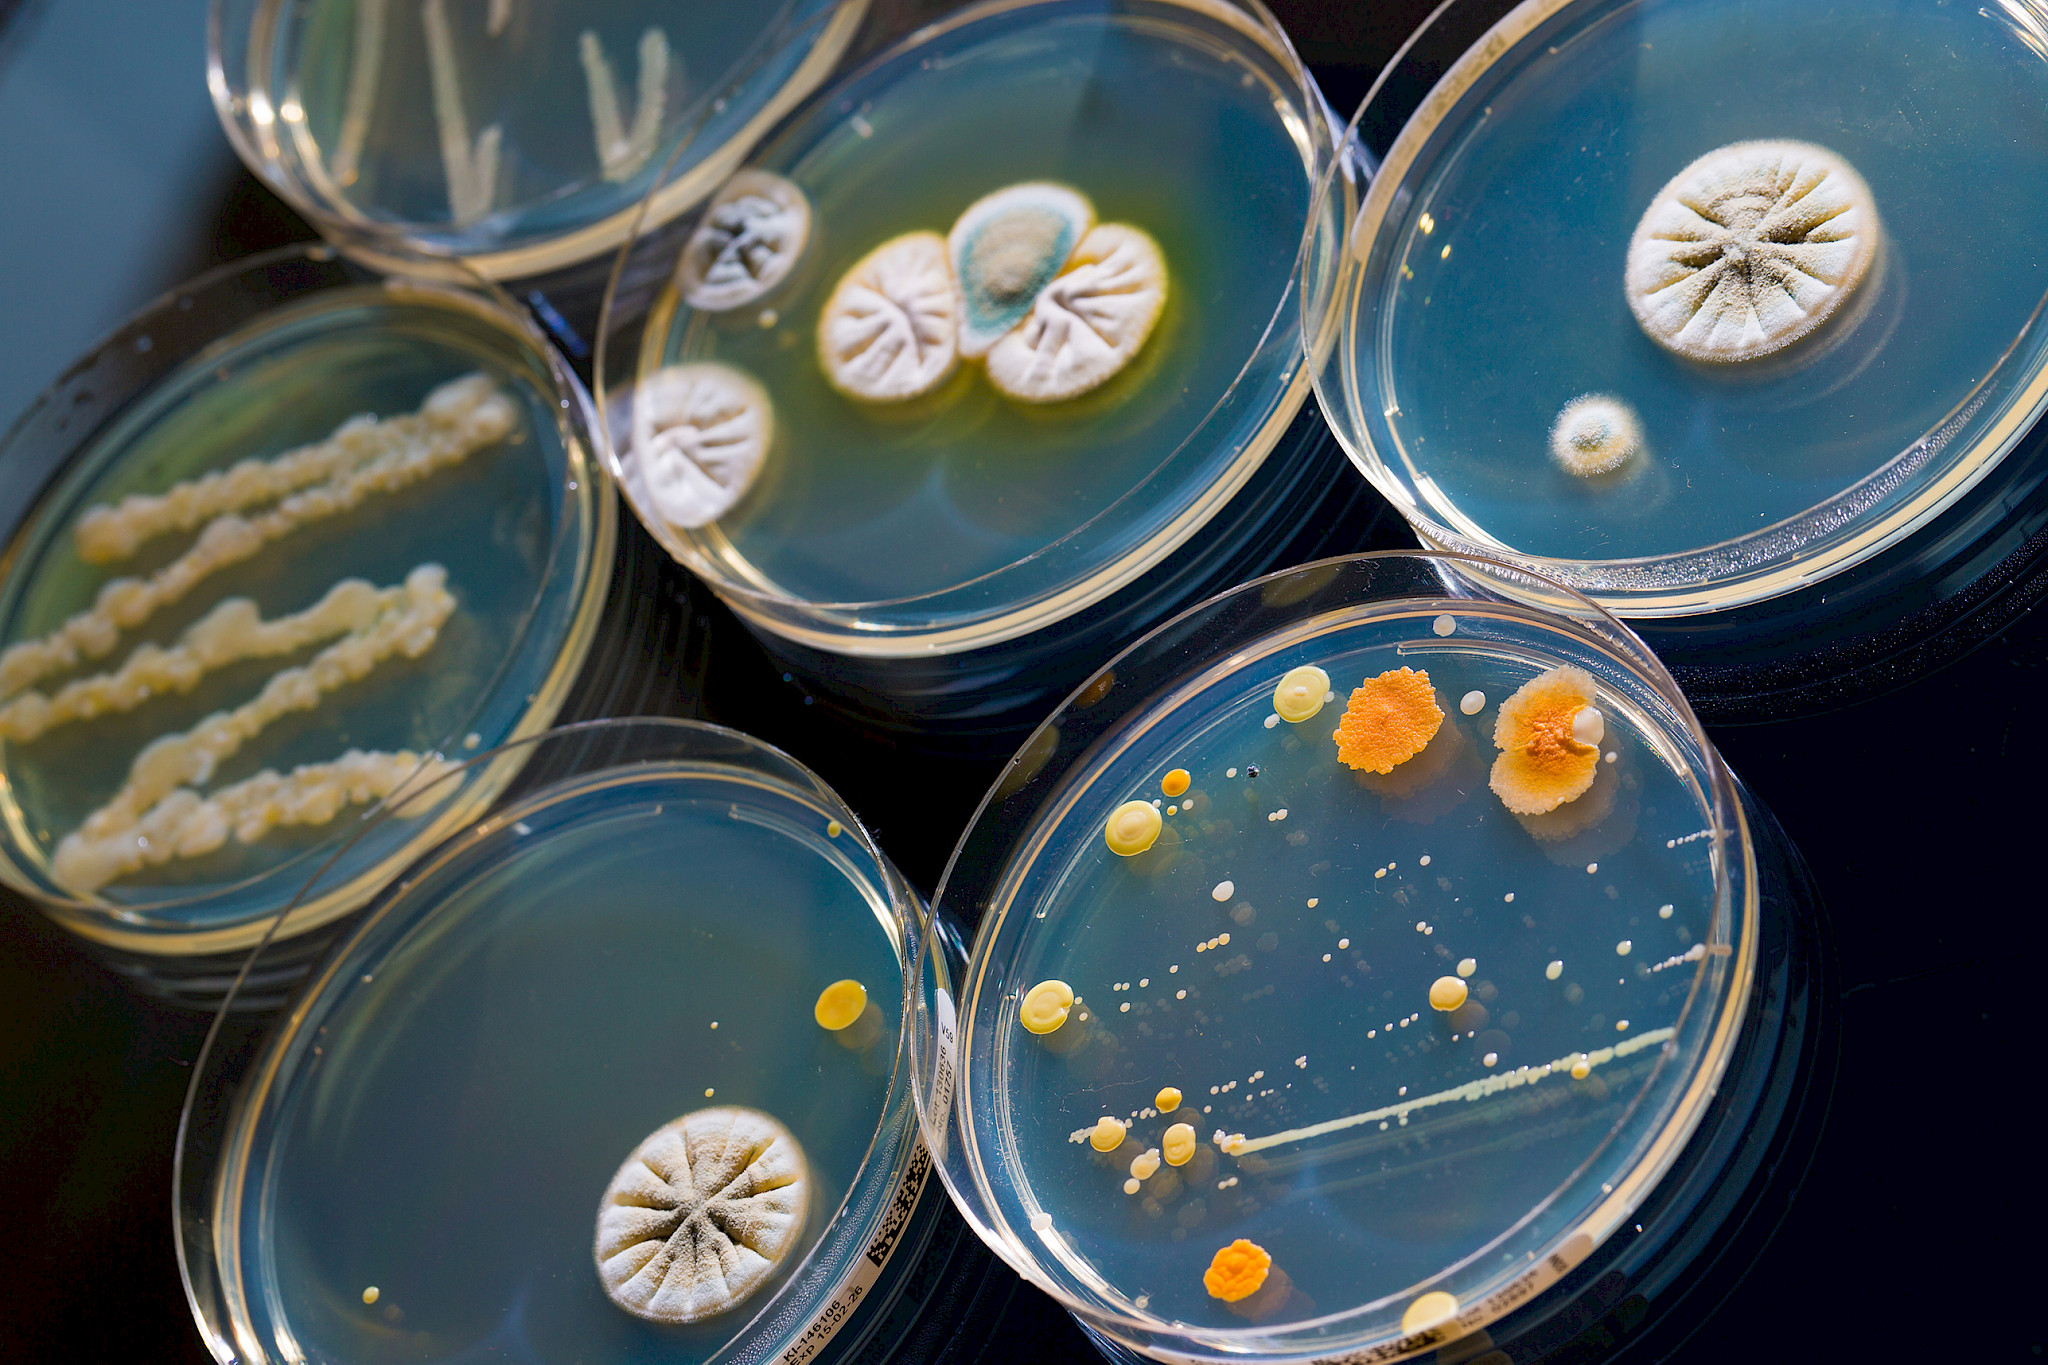 Petri dish with growing cultures of microorganisms and moulds